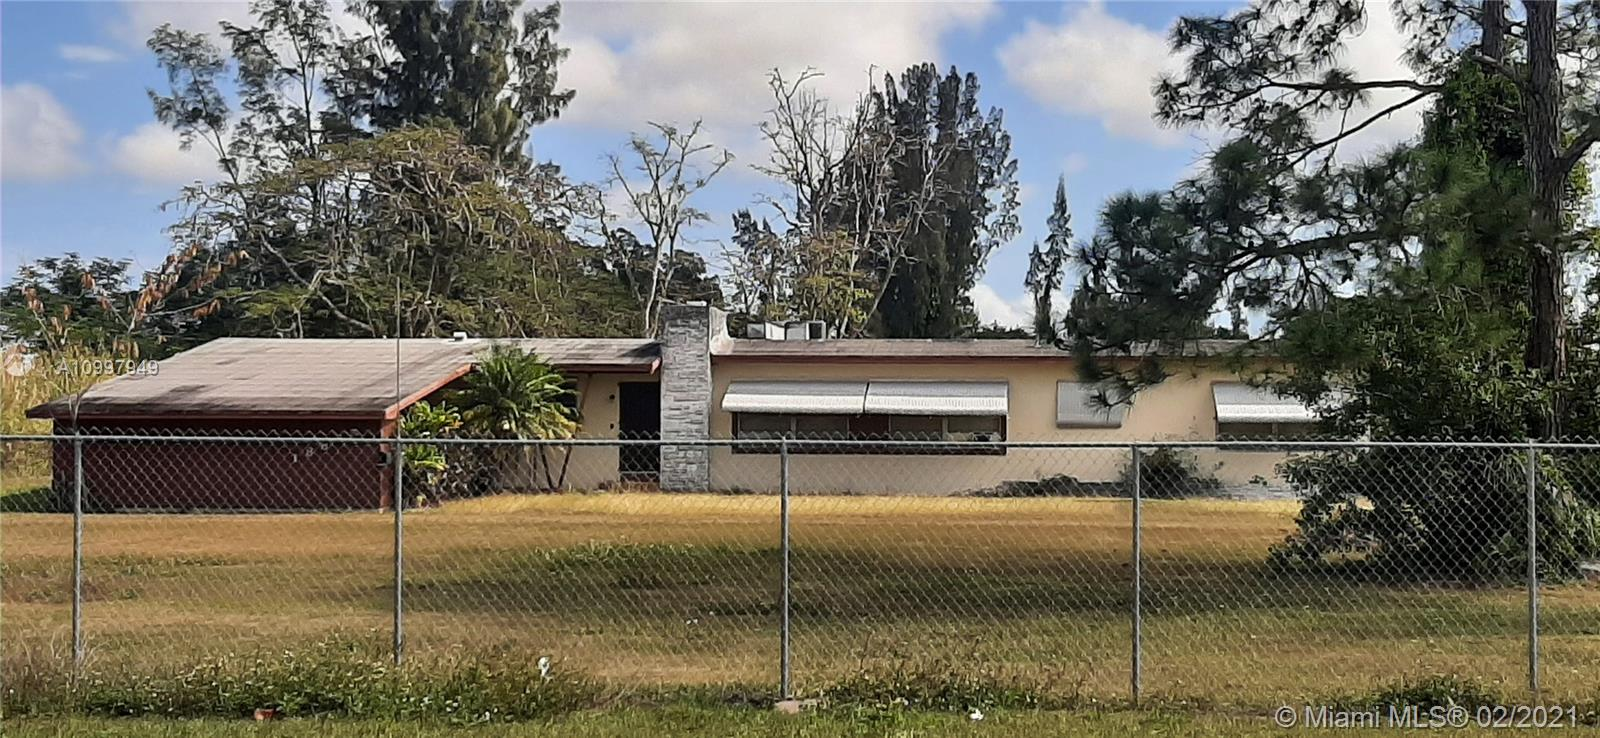 Details for 18825 147th Ave, Miami, FL 33187